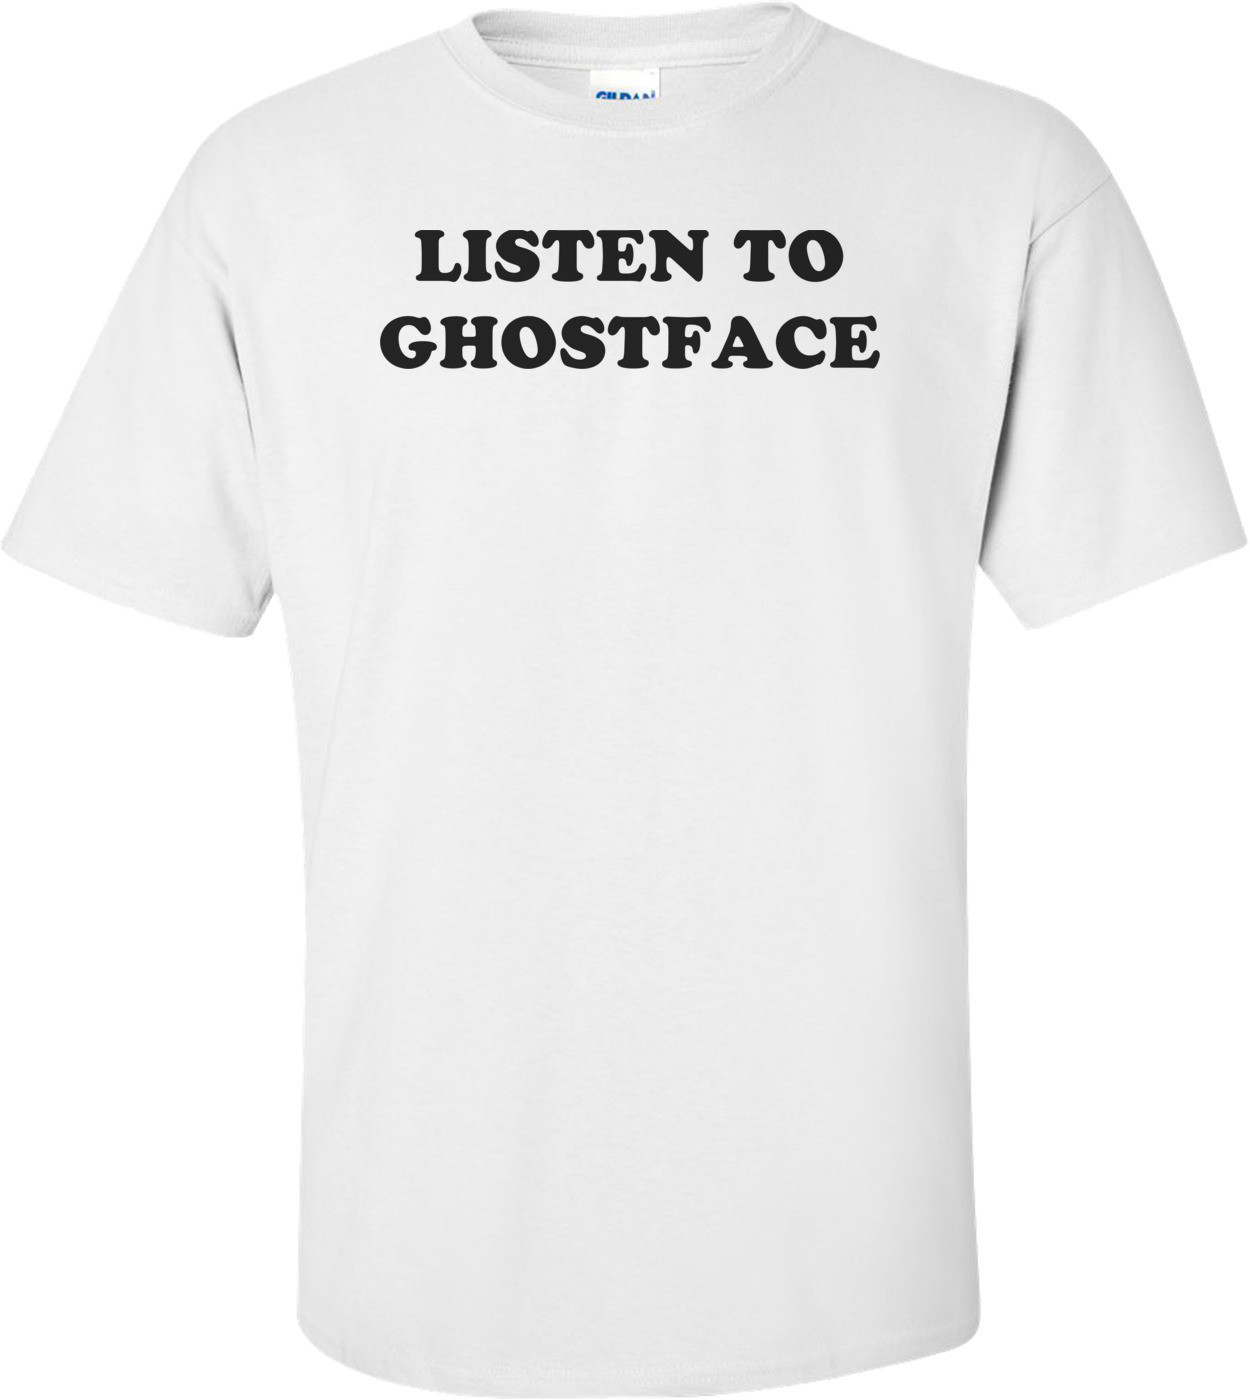 LISTEN TO GHOSTFACE Shirt